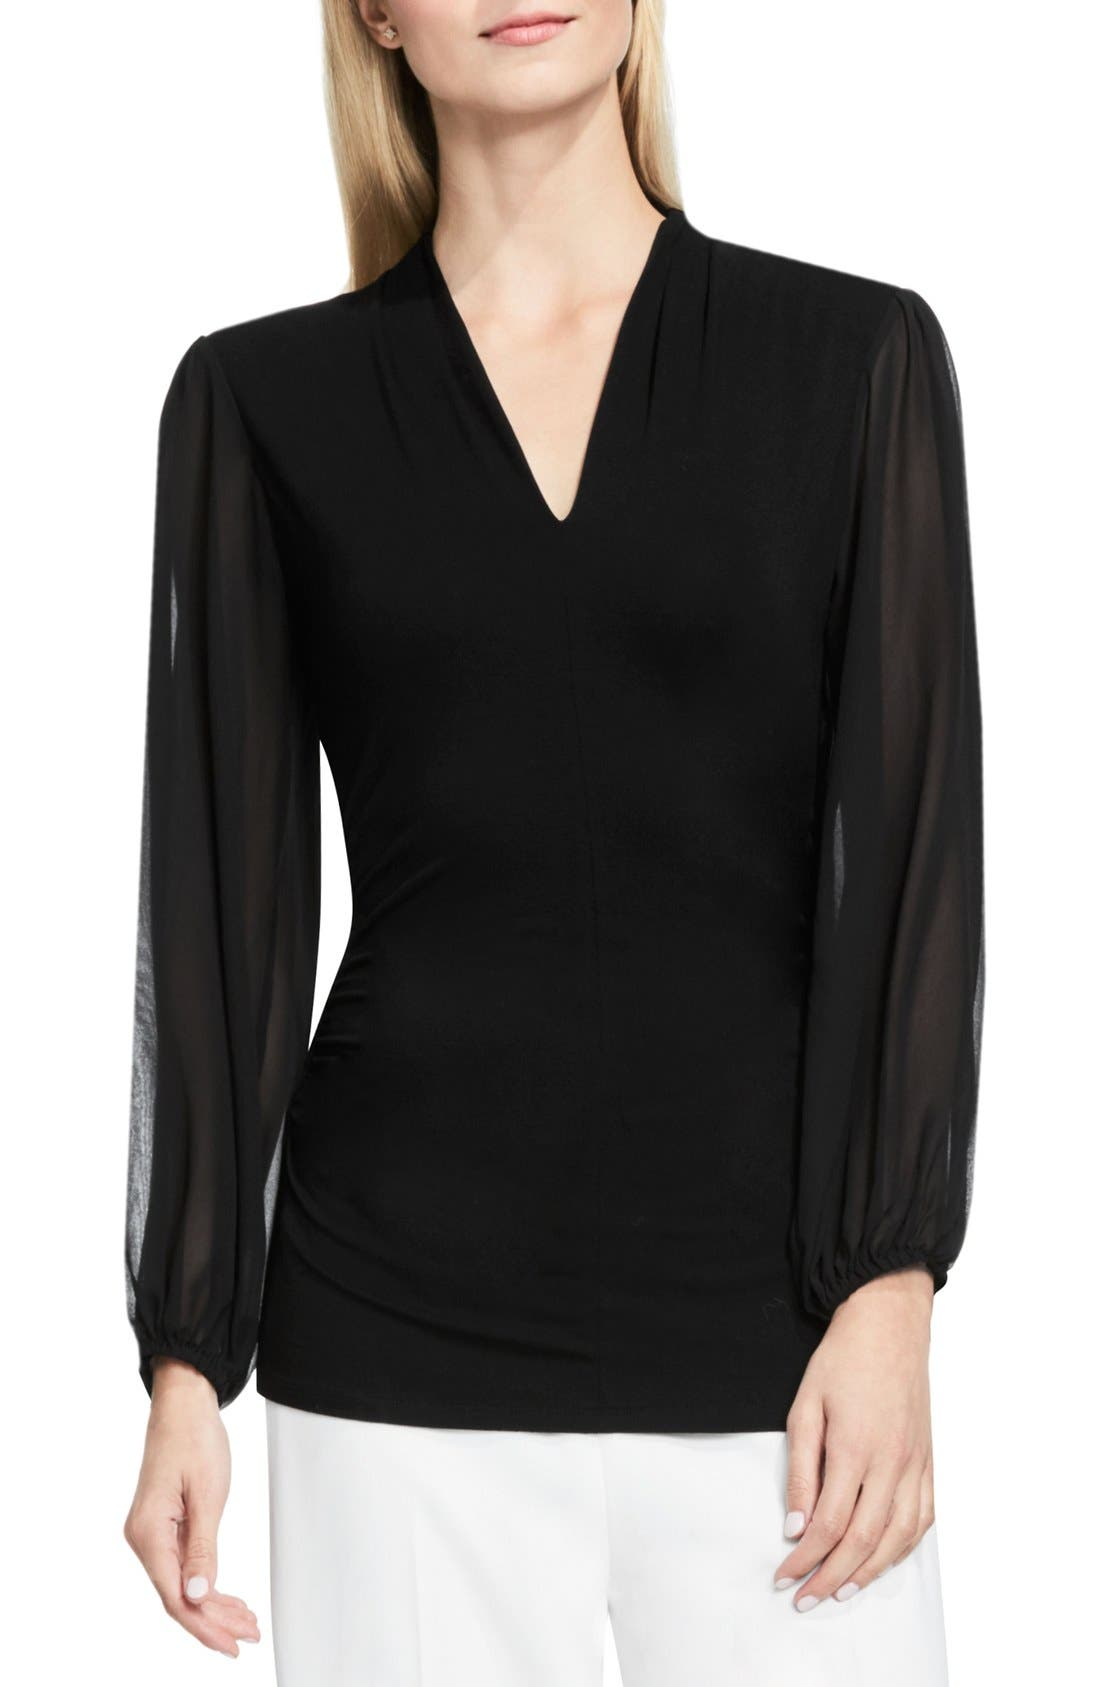 Alternate Image 1 Selected - Vince Camuto Chiffon Sleeve V-Neck Top